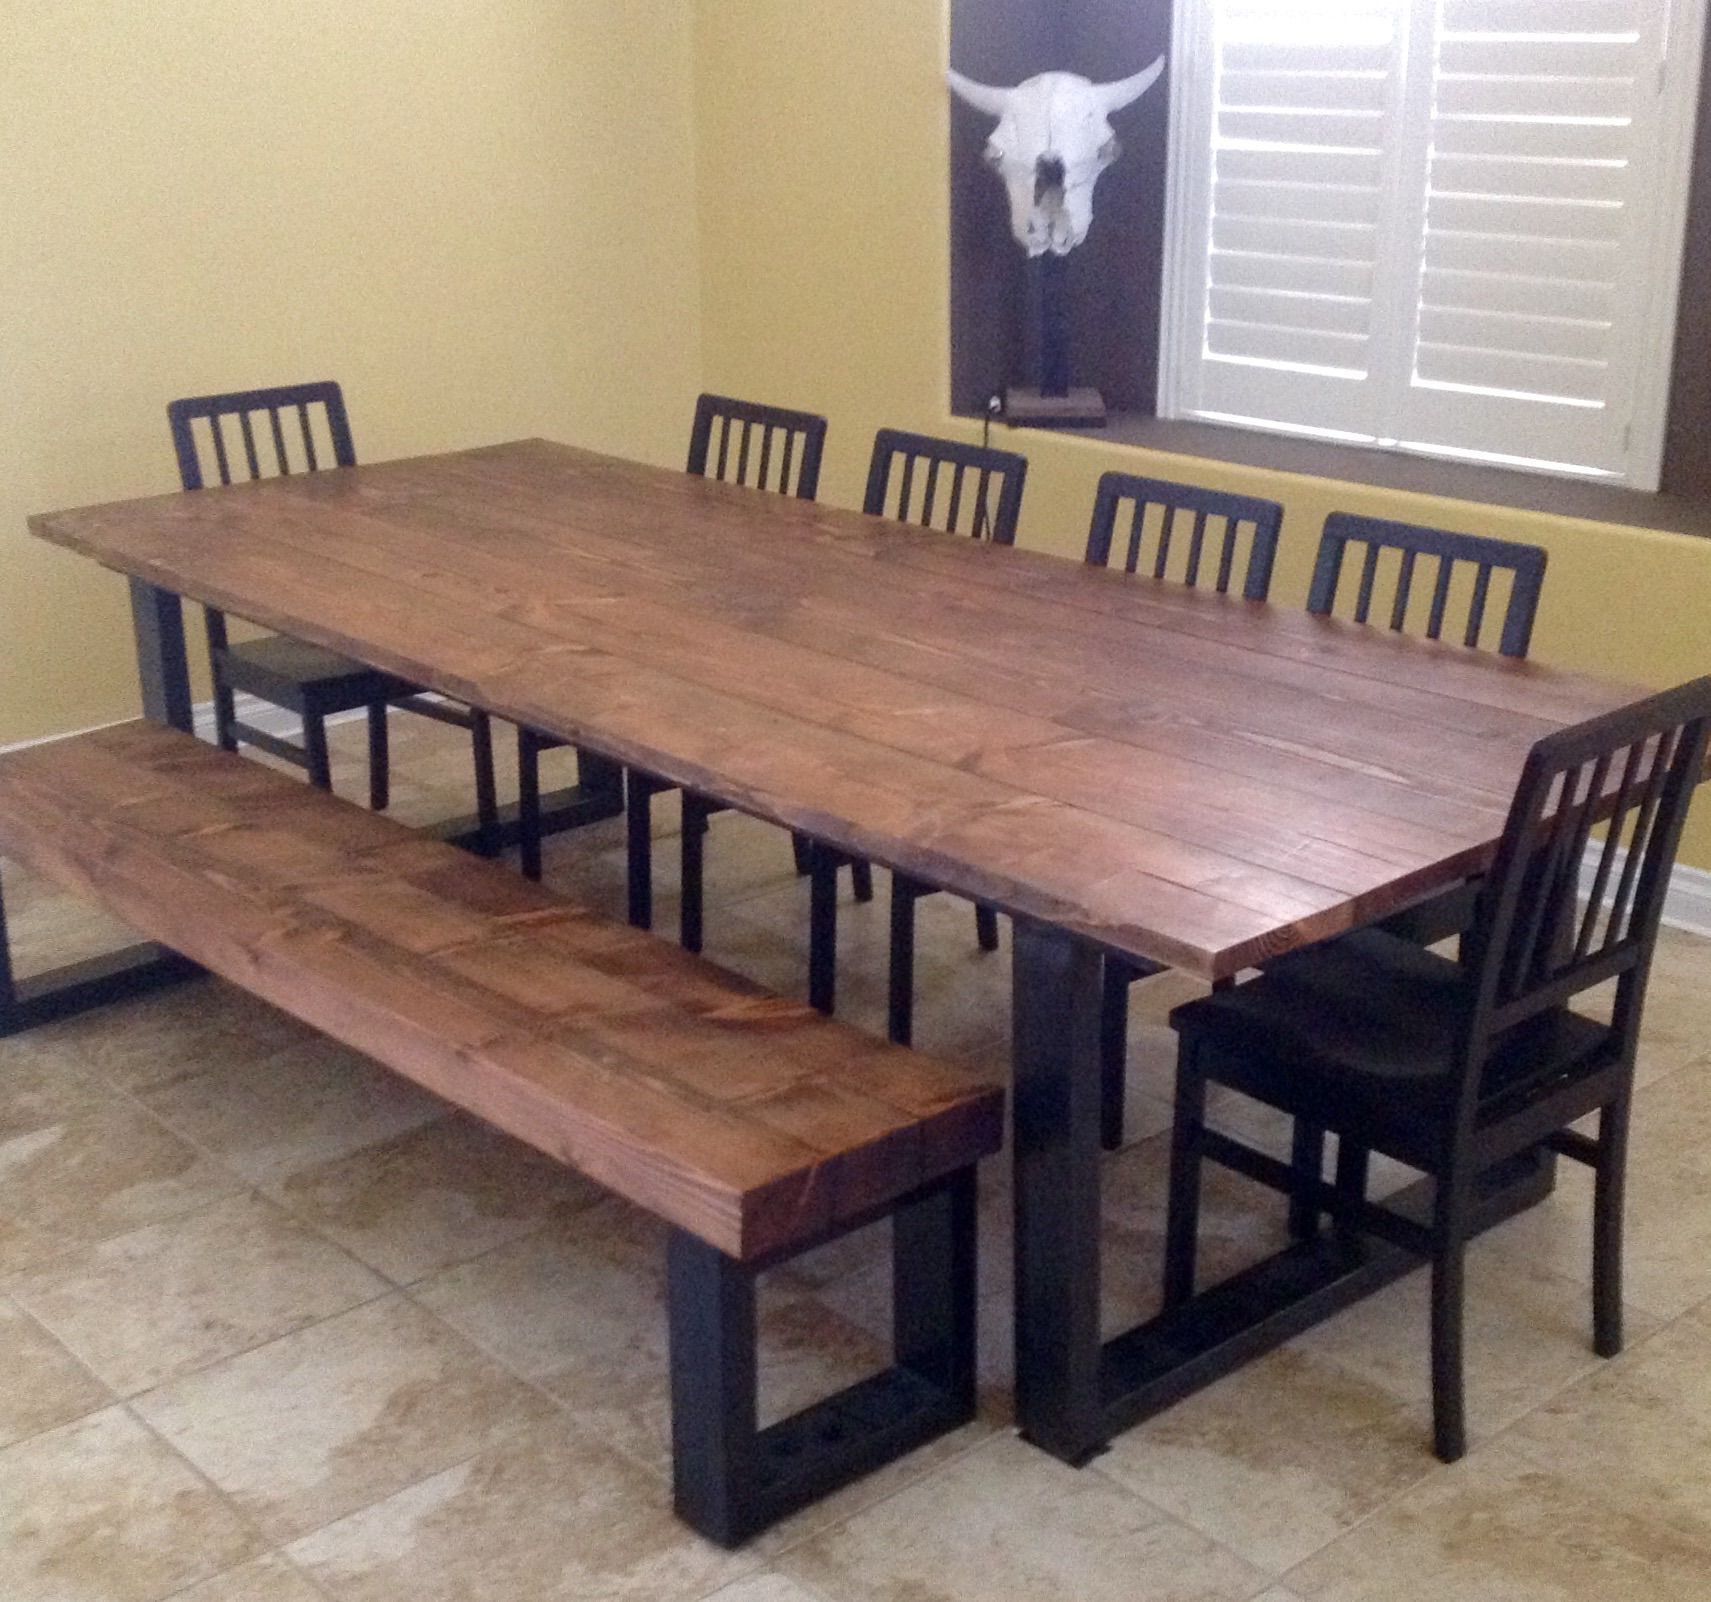 hand made real wood dining table.lonesome burro, llc